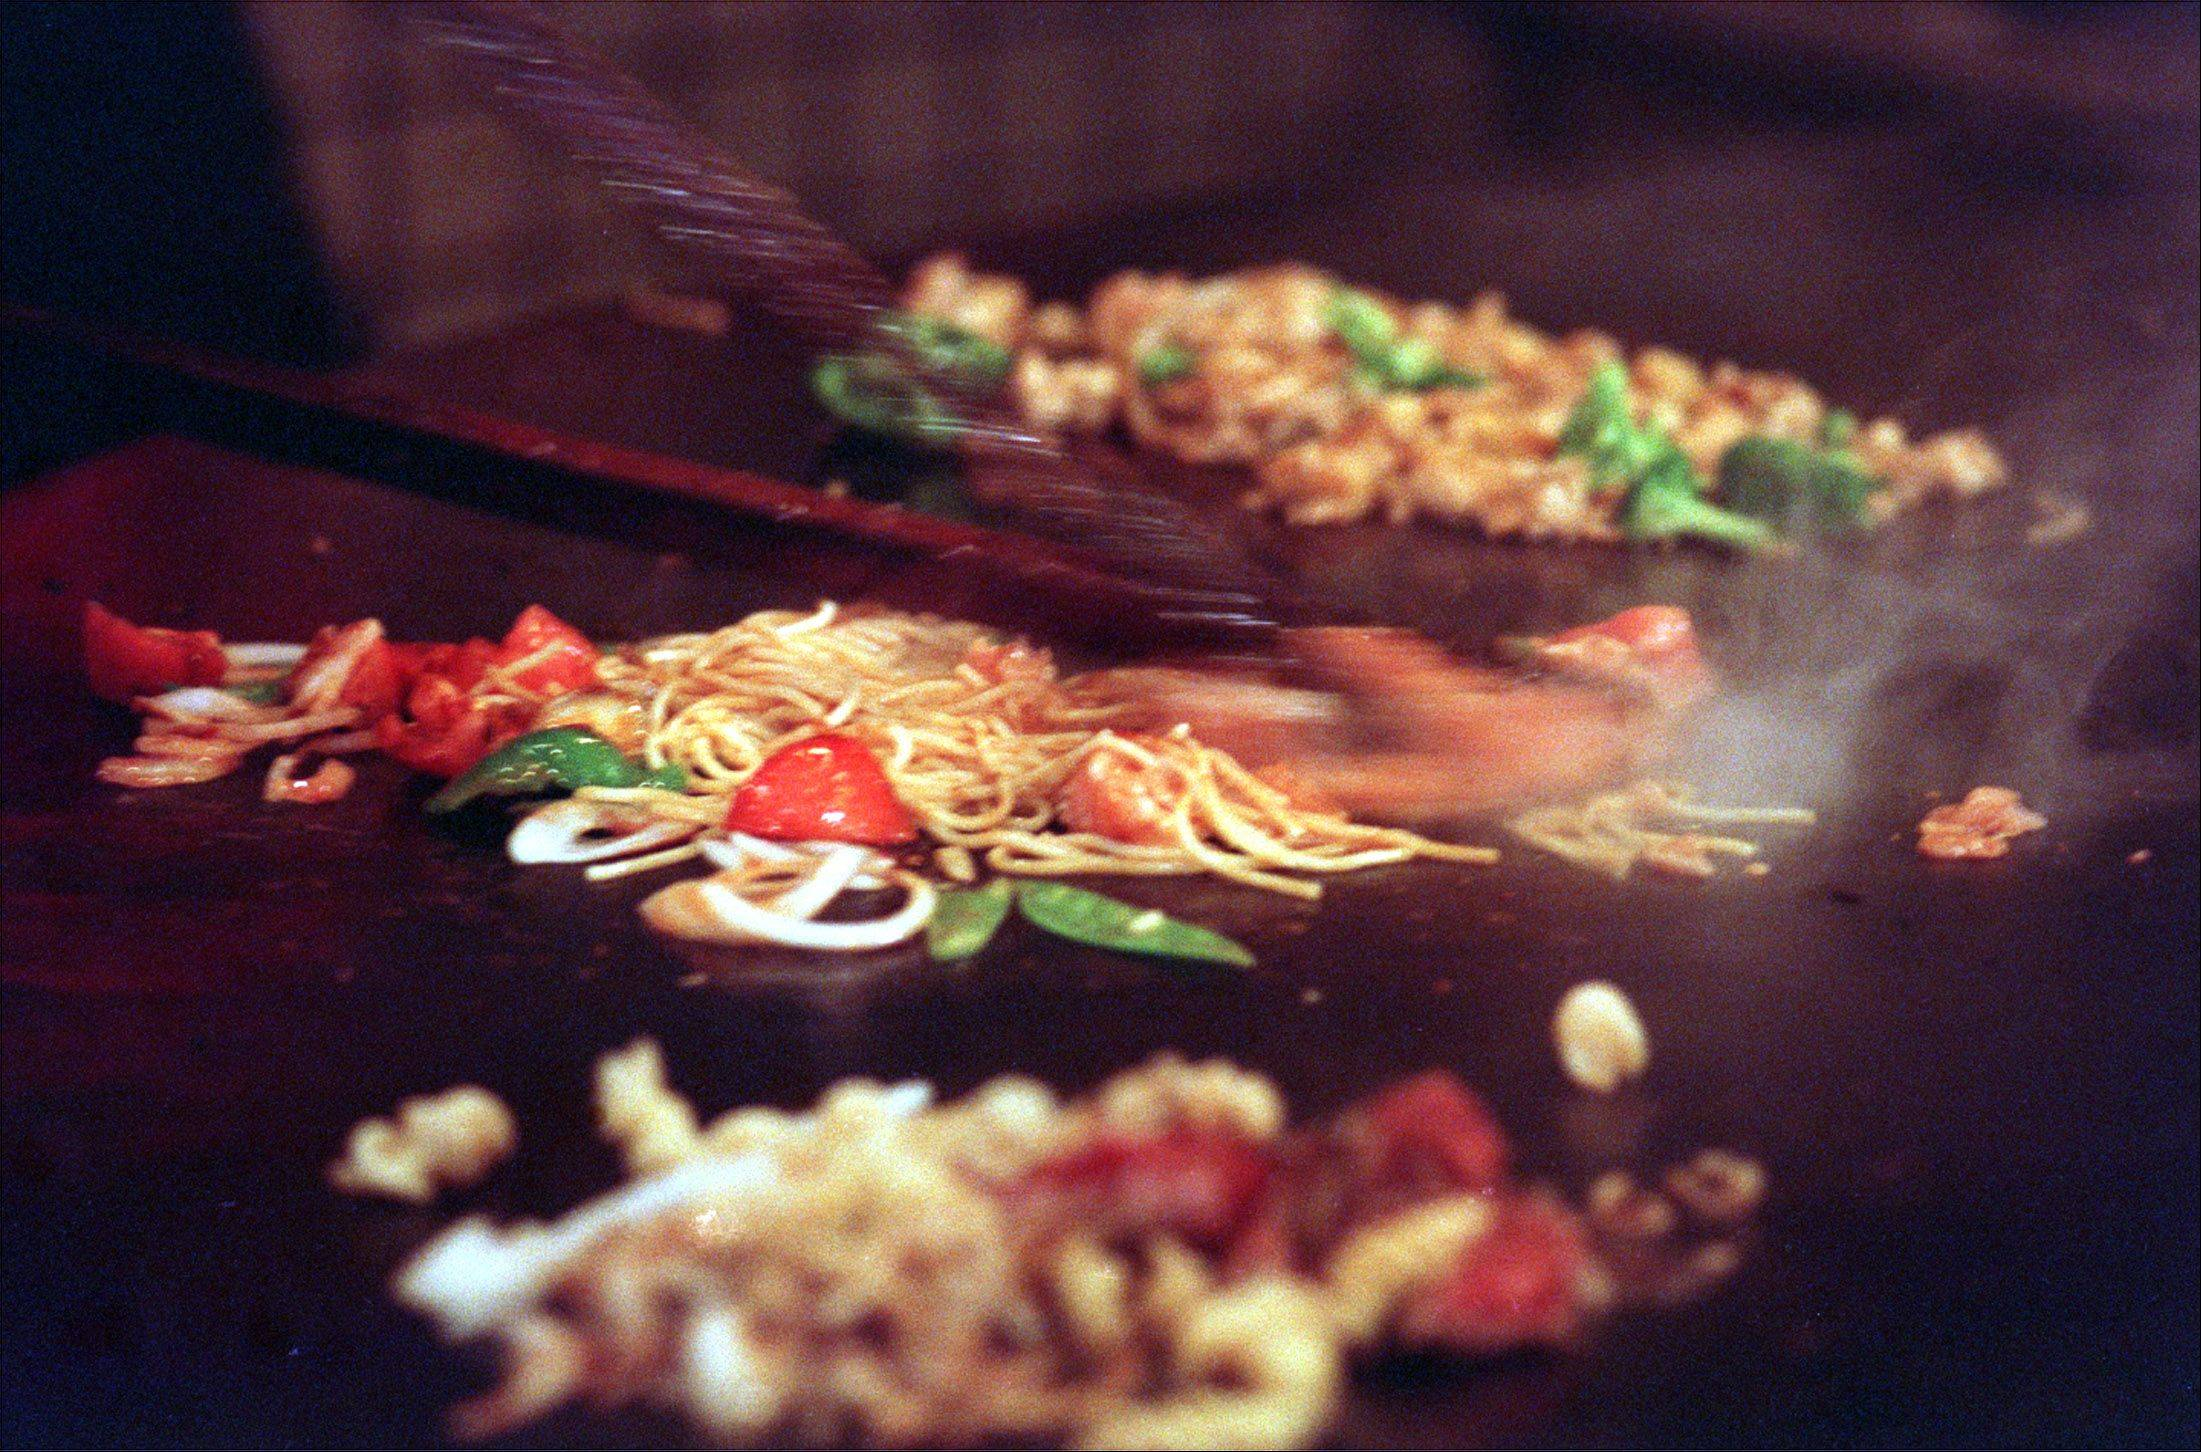 Mongolian-style grilling allows for several meals to be cooked at the same time.